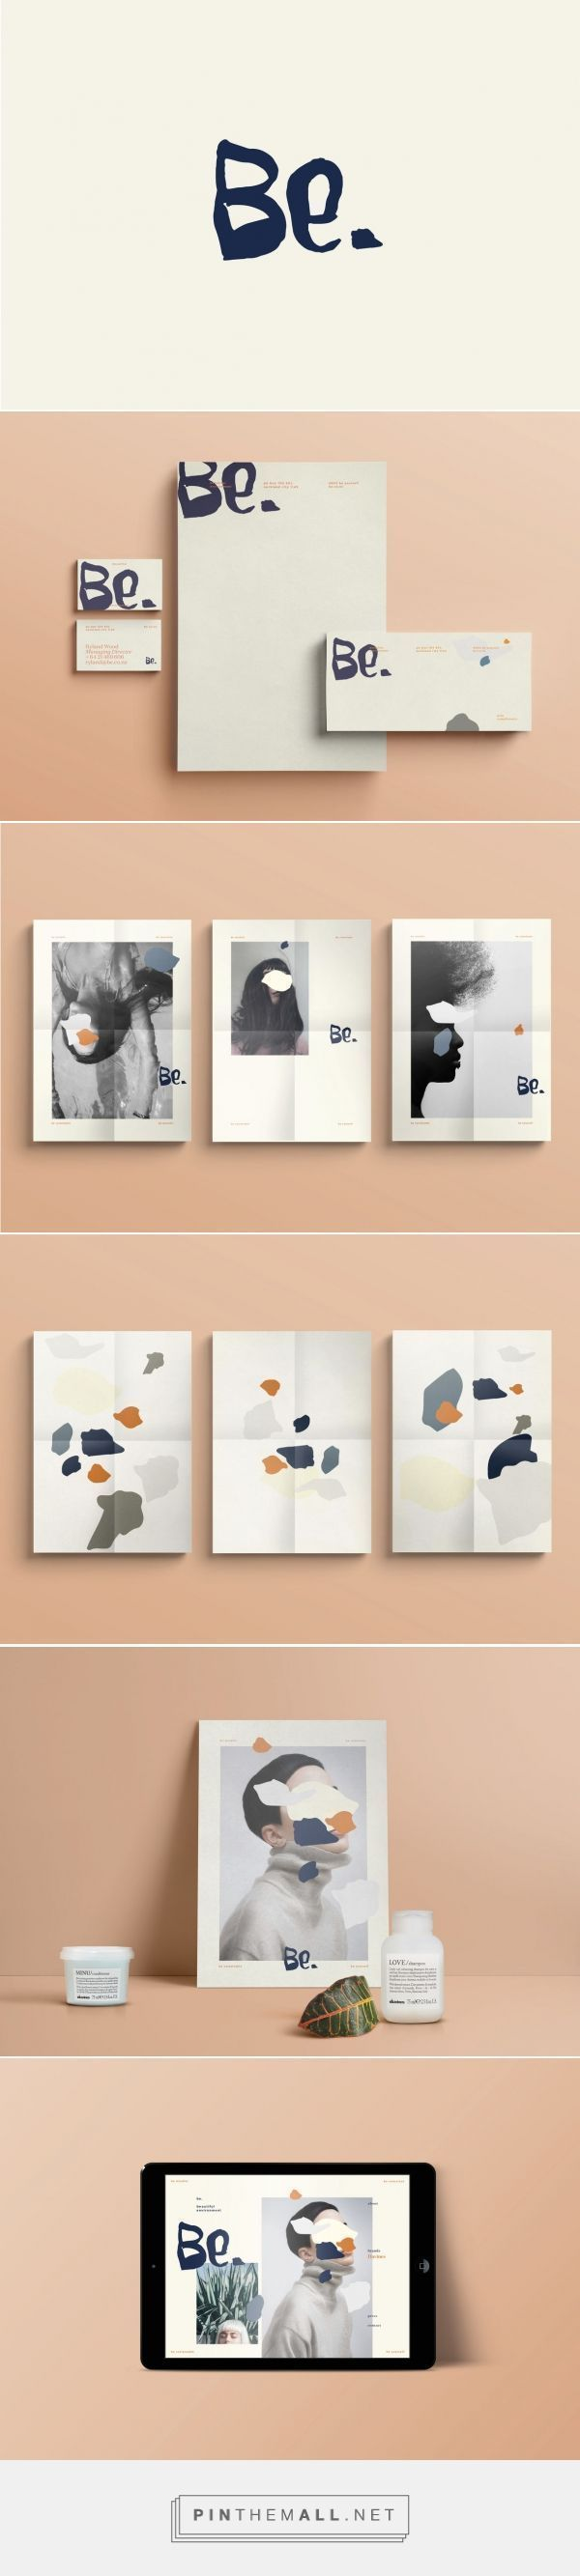 Beautiful Environment Branding by One Design | Brand styling inspiration | Logo design inspiration